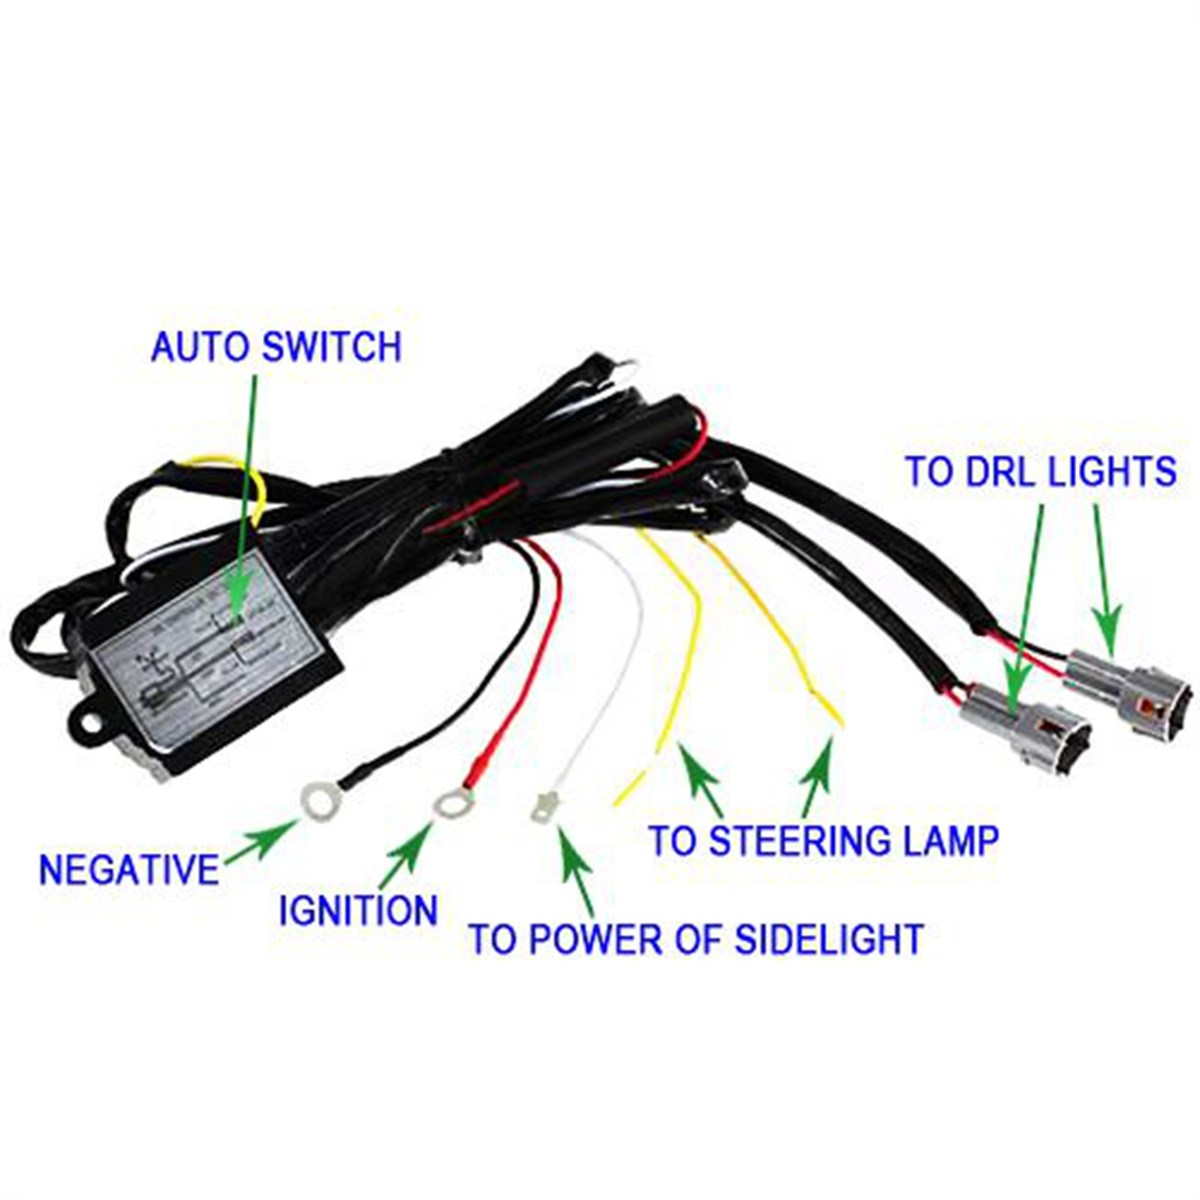 Drl Led Daytime Running Light Relay Harness Automatic On Off Control Switch Wiring Diagram 12v Warning Lights In Car Switches Relays From Automobiles Motorcycles